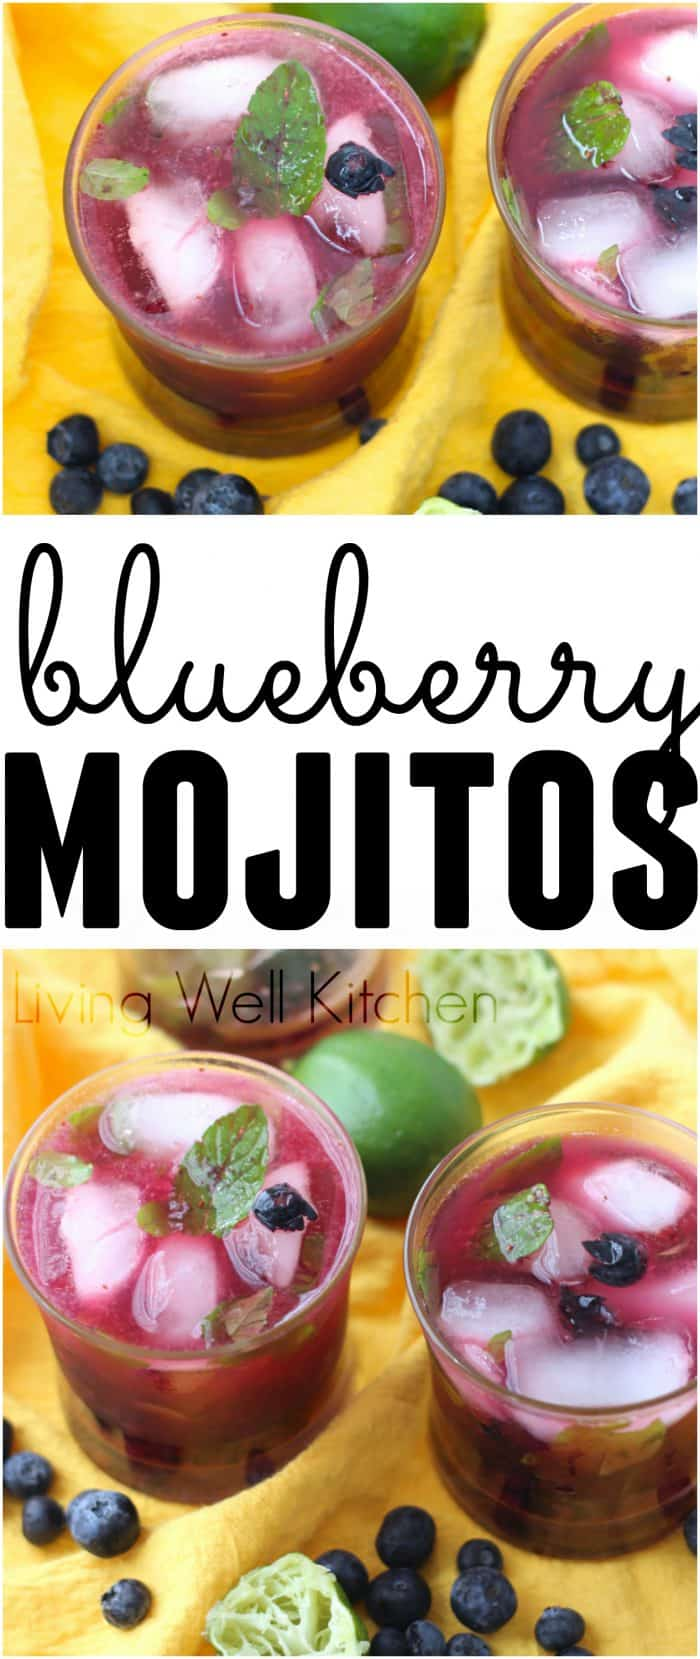 Juicy blueberries, muddled mint, fresh squeezed lime juice, an optional dash of sugar, club soda, and rum make this fabulous warm weather drink. An easy recipe for one or you can multiply to make more